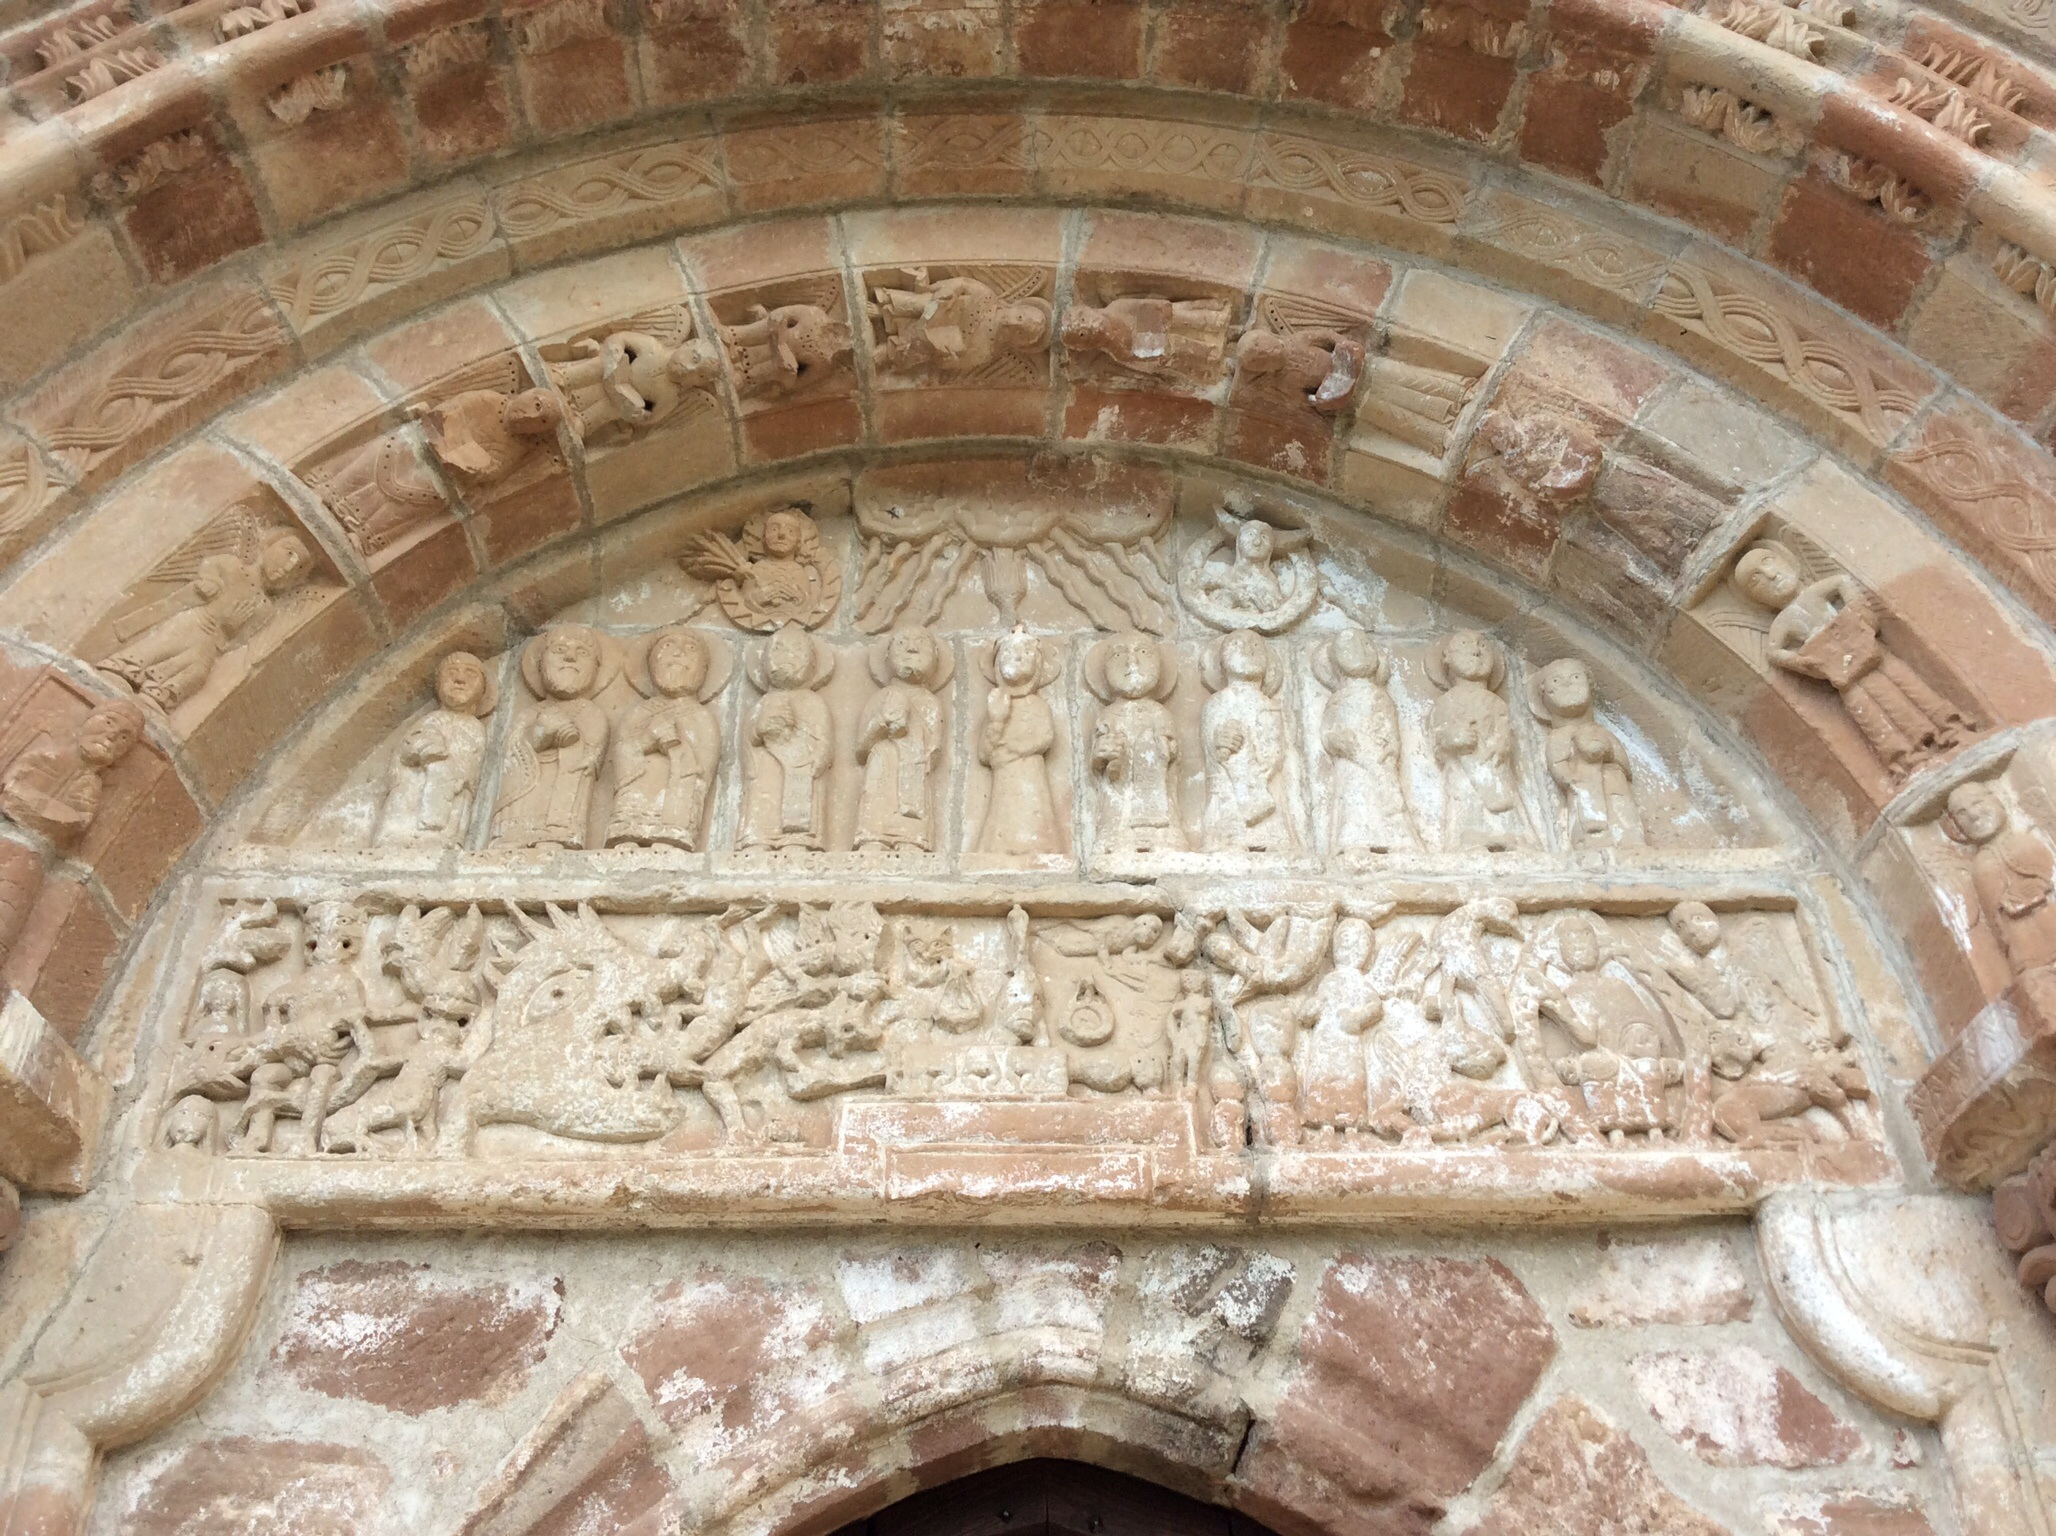 This sculpture over the church's doorway is unusual as it depicts, not the final judgment scene, as is typical, but the day of Pentecost.